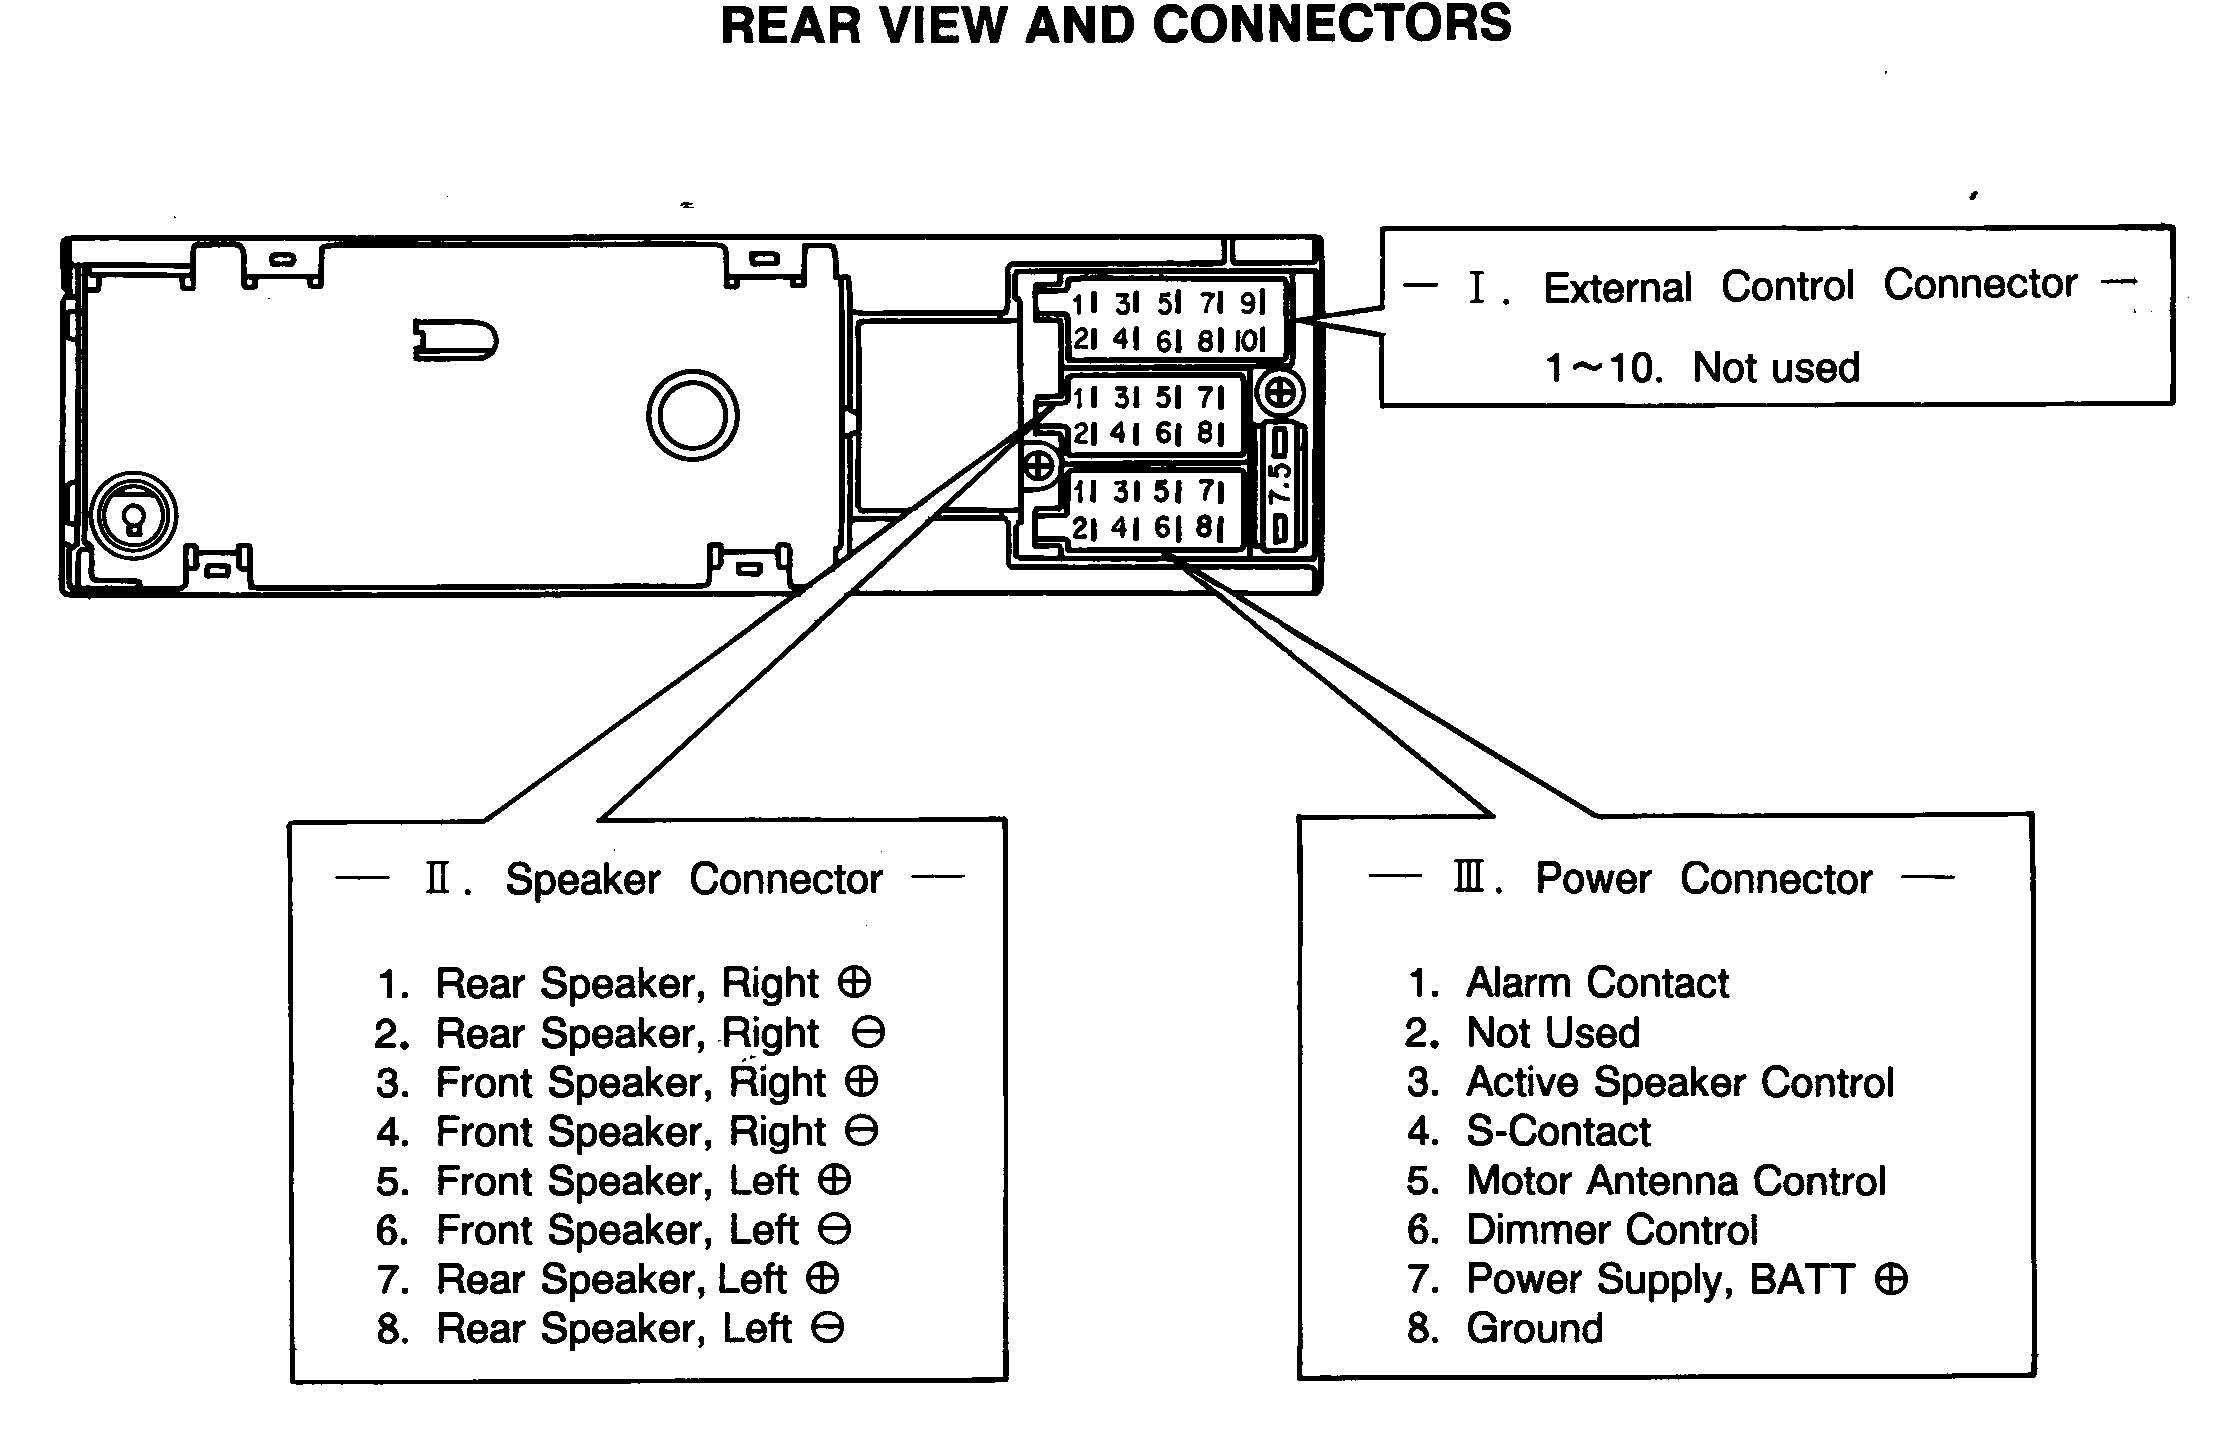 Mercedes Benz Radio Wiring Diagram For 2013 Trusted Diagrams Fuse Box W108 Car Residential Electrical International